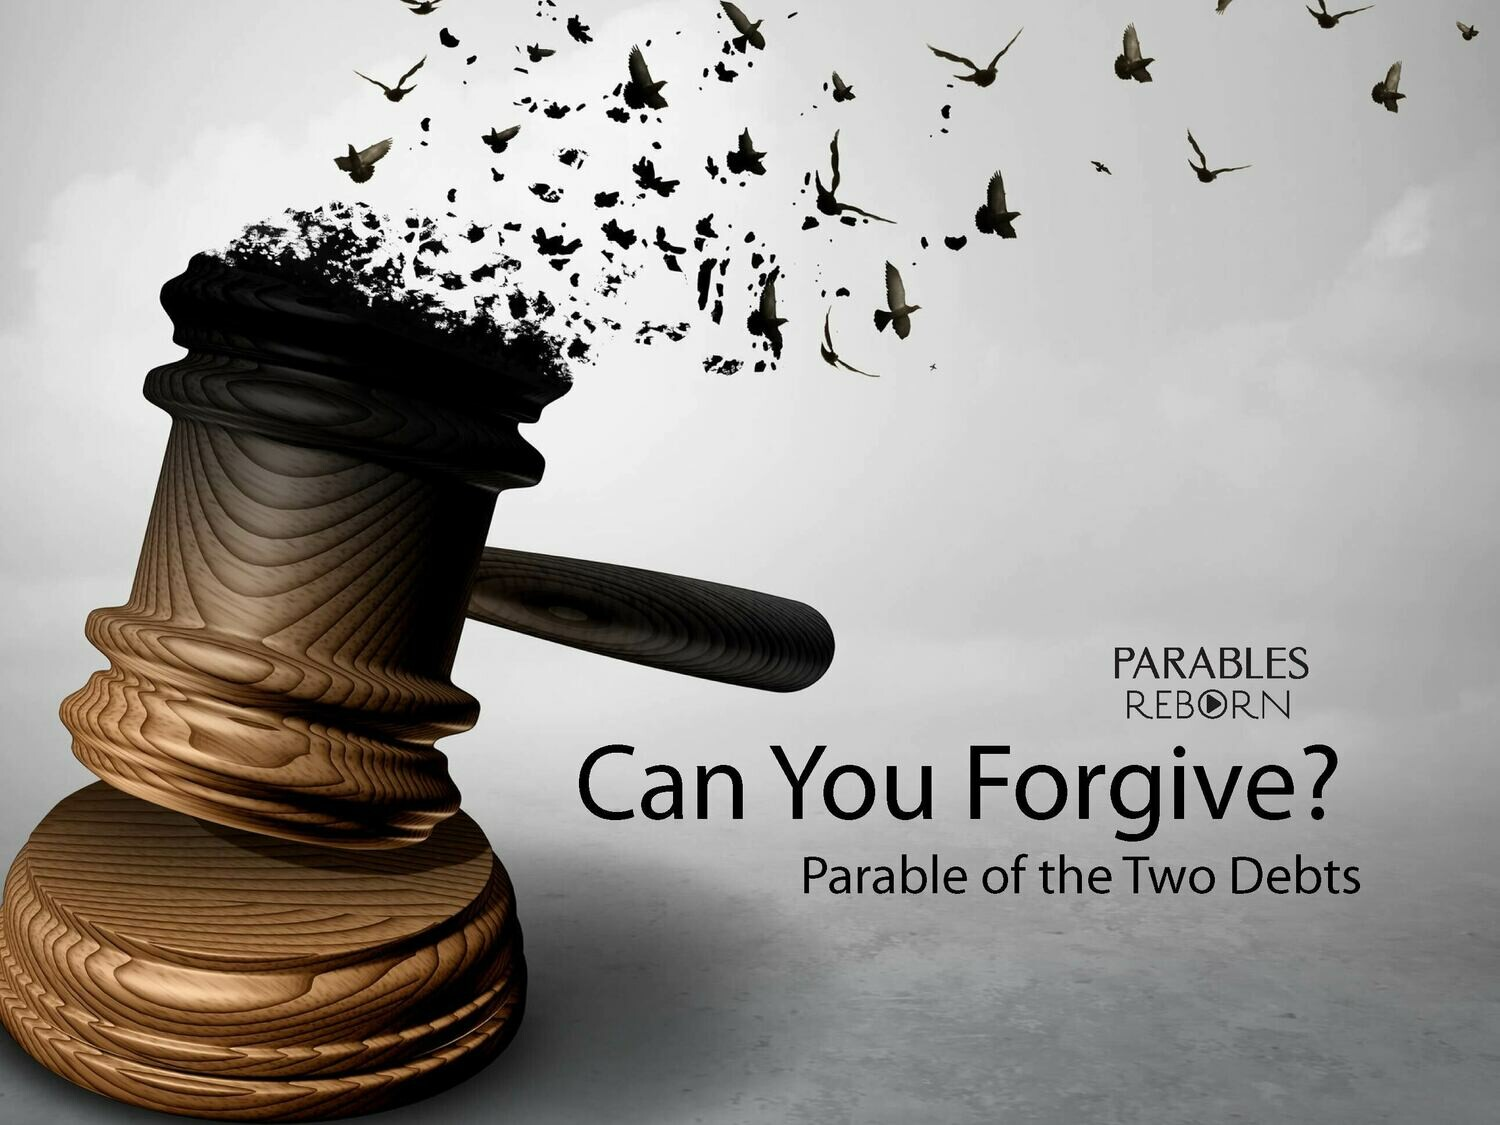 02 Parables Reborn, Can You Forgive?